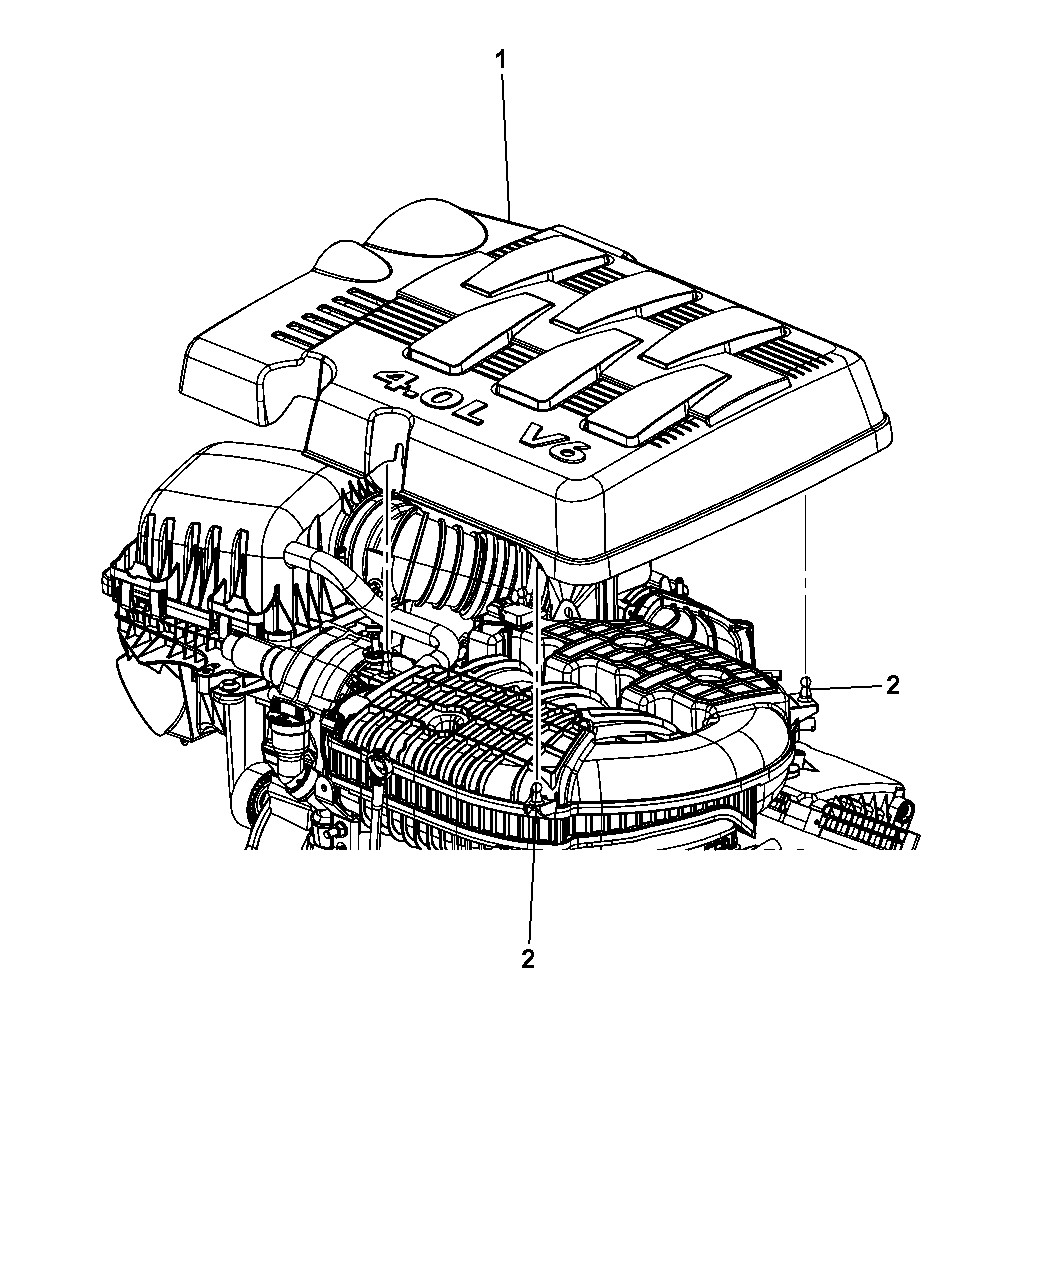 Engine Diagram On A 2010 Chrysler town and Country 3.8lt Ab Genuine Chrysler Cover Engine Of Engine Diagram On A 2010 Chrysler town and Country 3.8lt